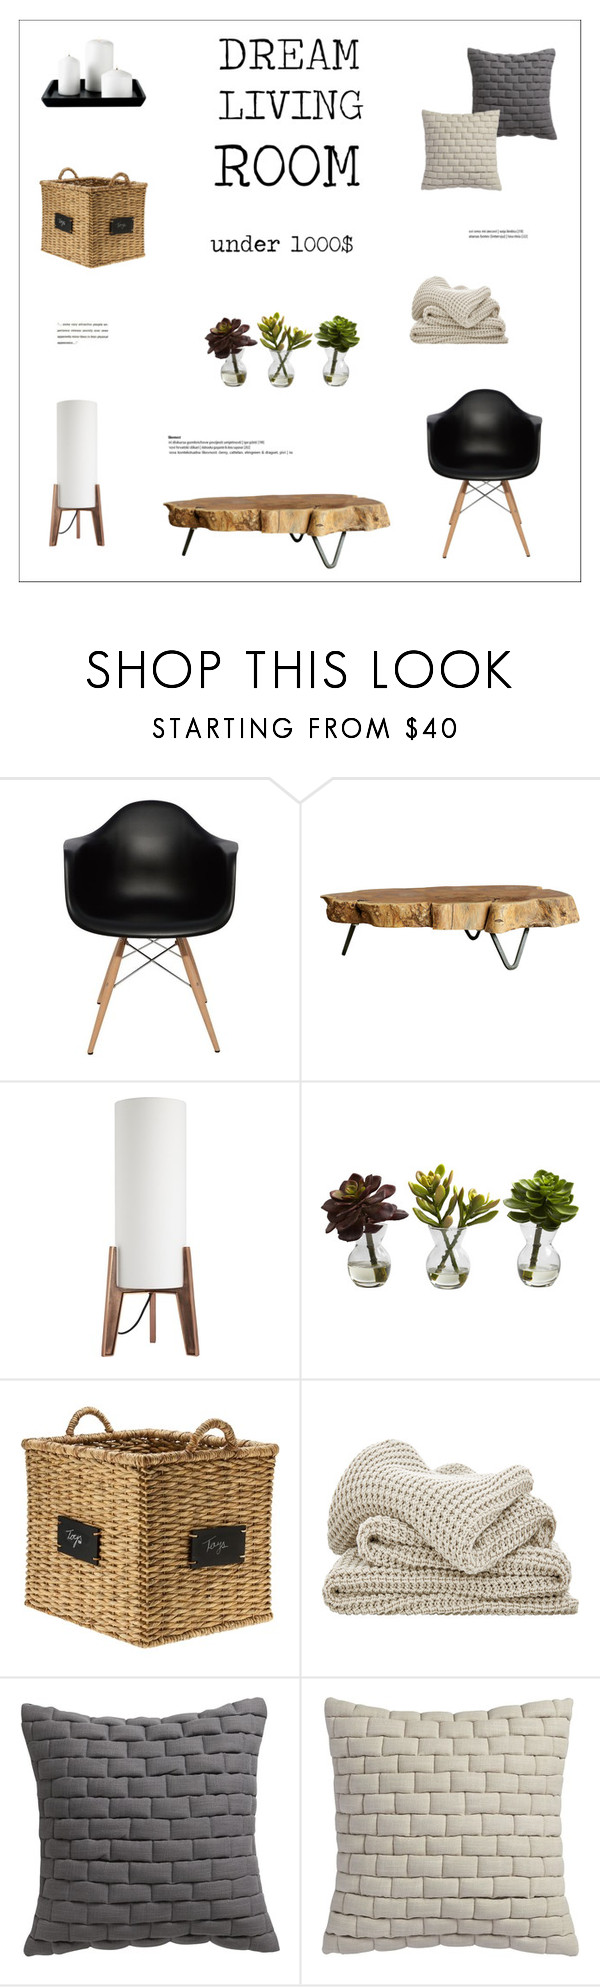 """Untitled #399"" by zitanagy ❤ liked on Polyvore featuring interior, interiors, interior design, home, home decor, interior decorating, Nuevo, Dot & Bo, CB2 and Nearly Natural"